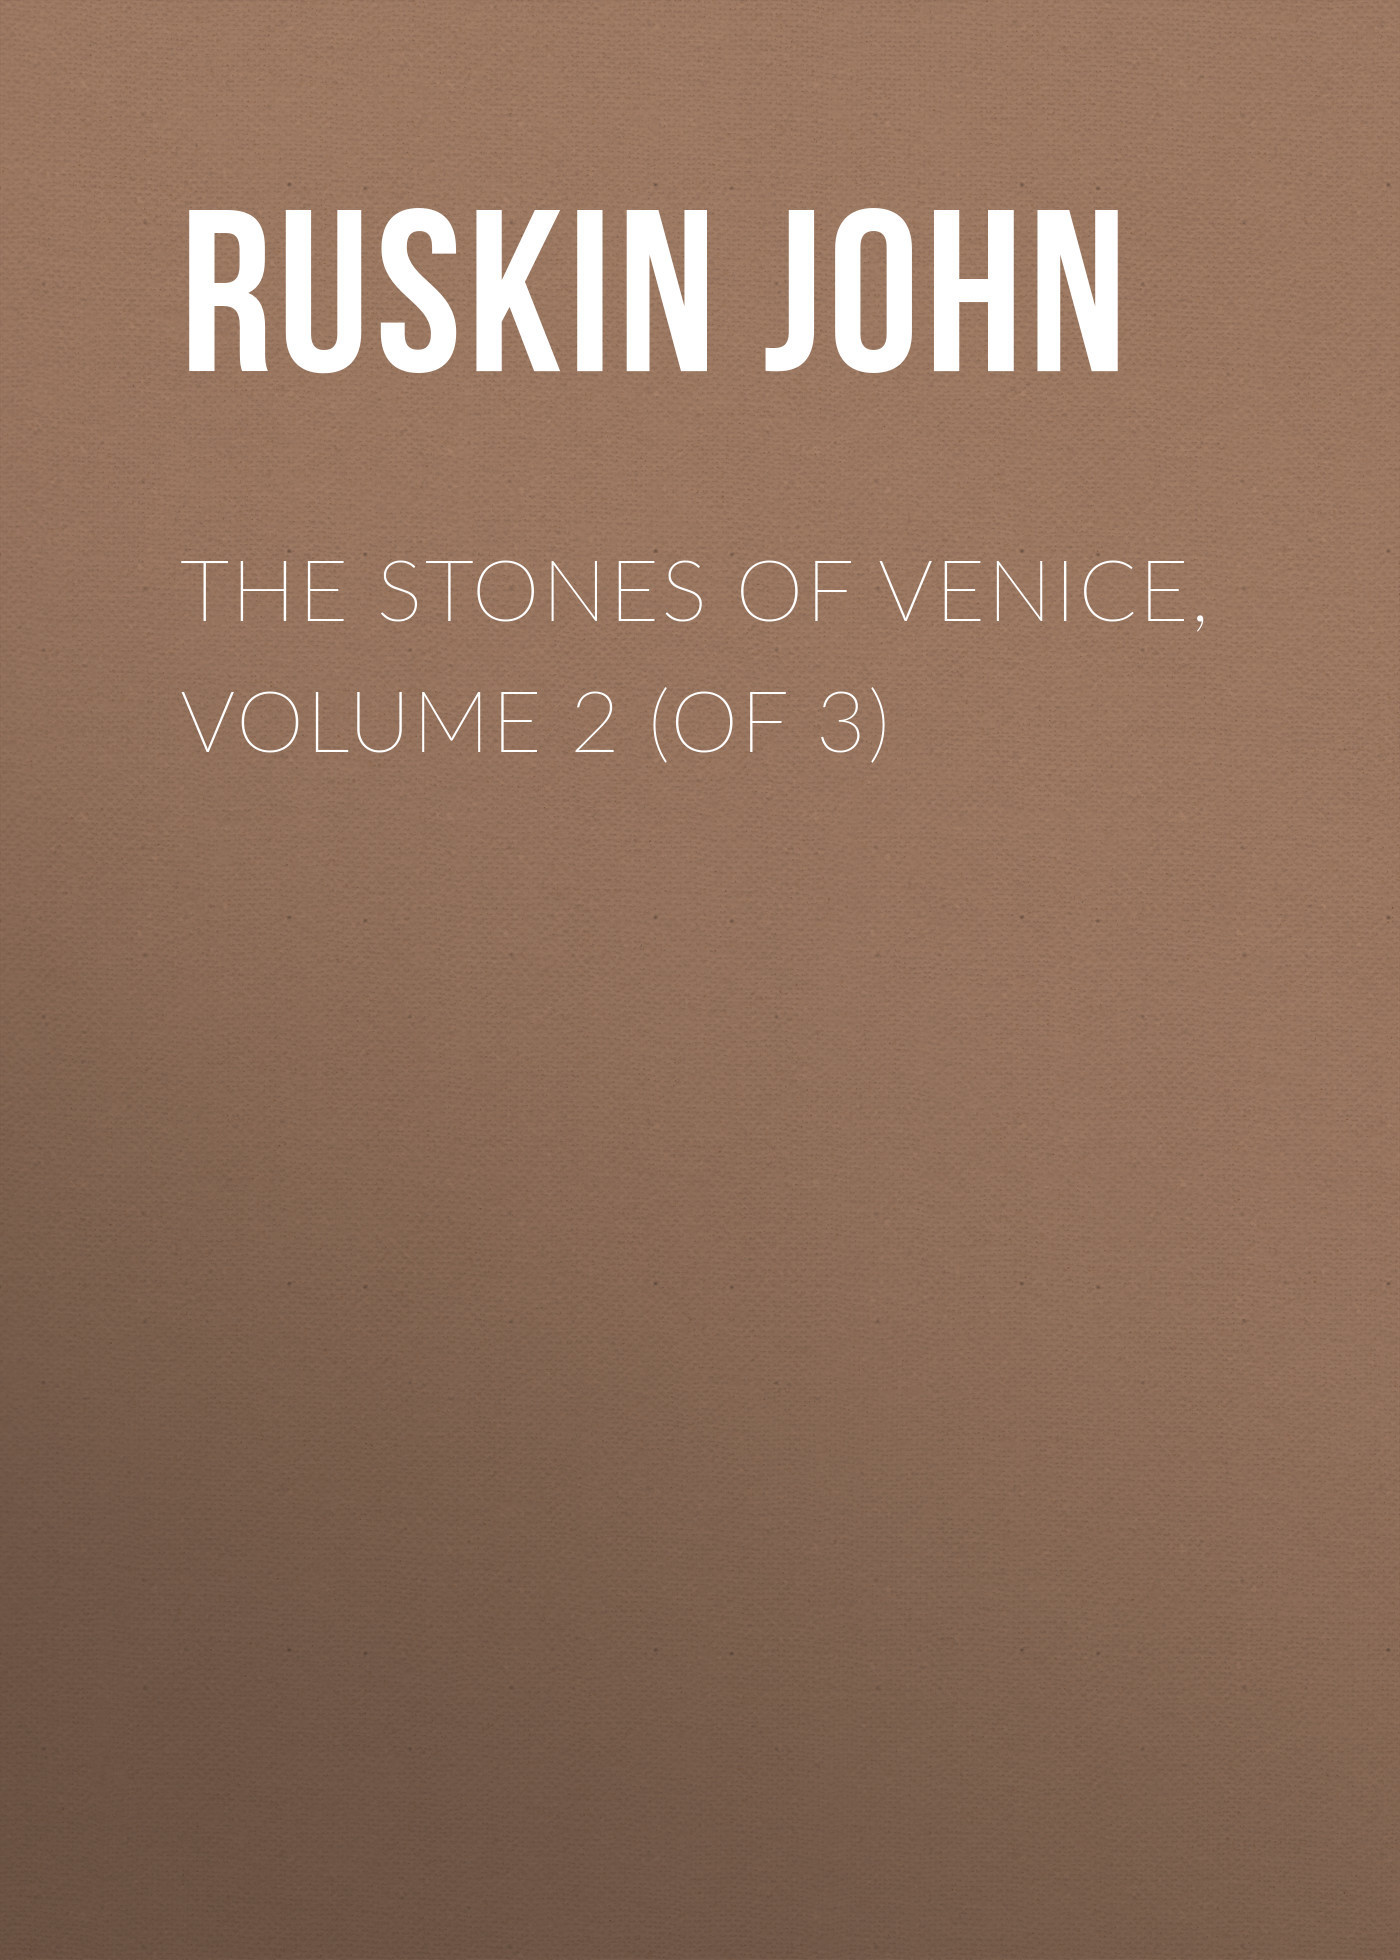 Ruskin John The Stones of Venice, Volume 2 (of 3)